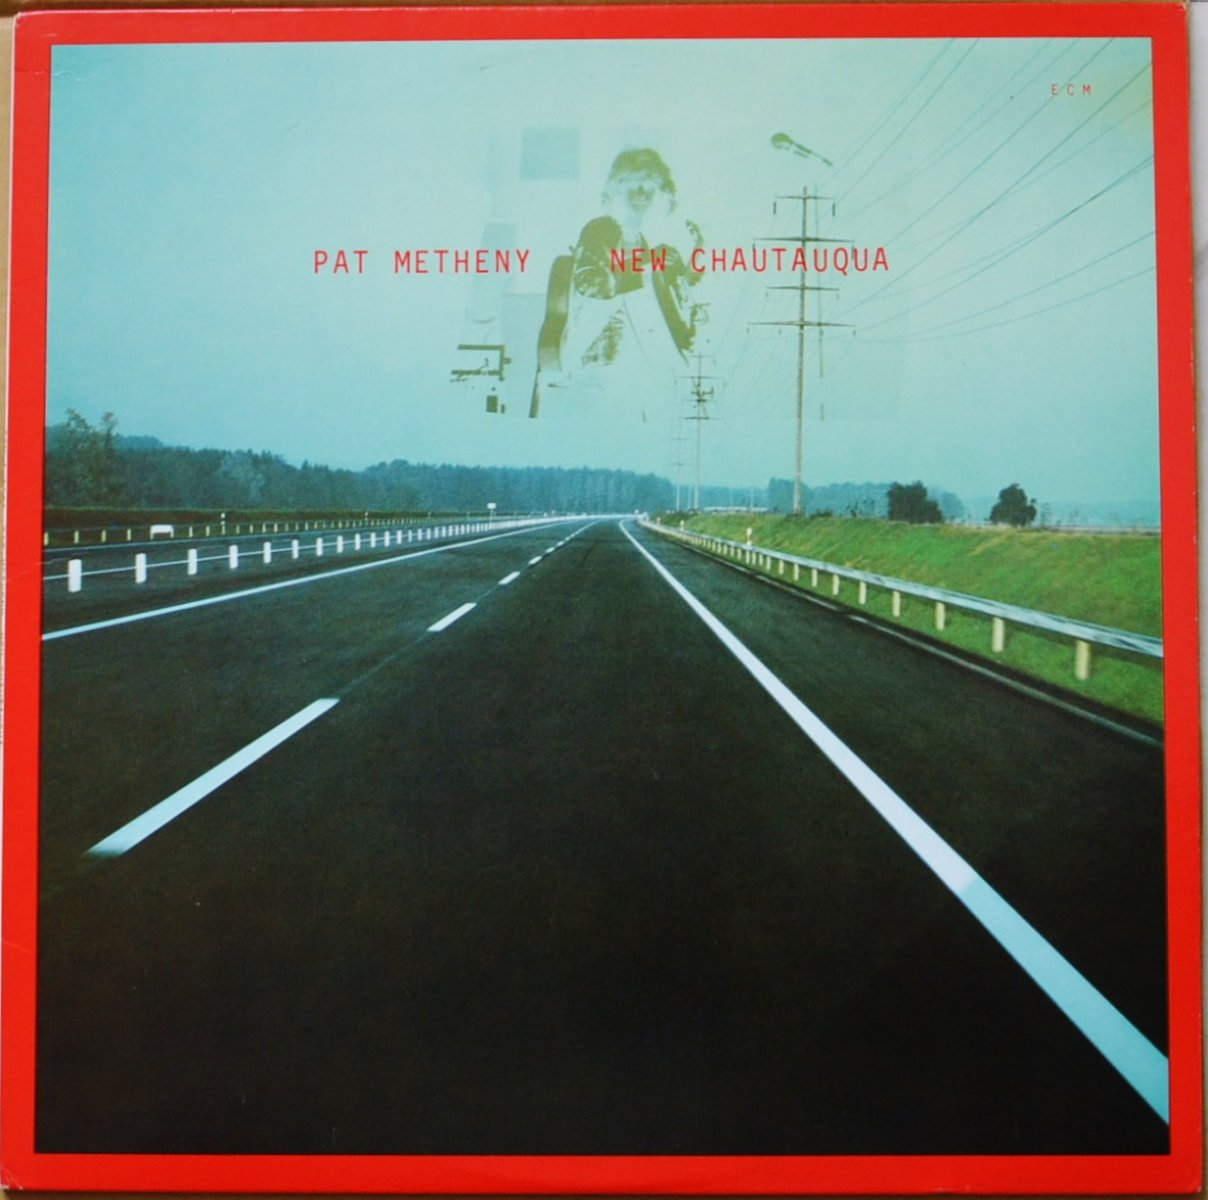 PAT METHENY / NEW CHAUTAUQUA (LP)